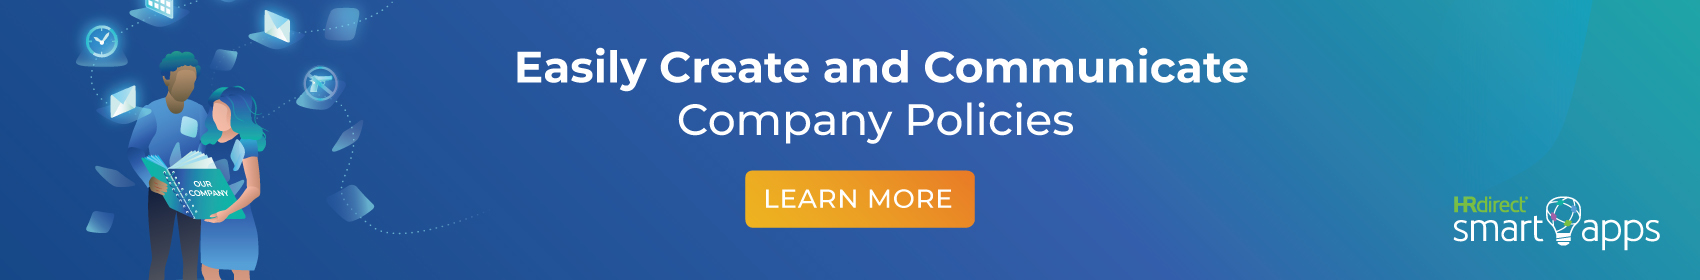 HRdirect Smart Apps - Company Policies